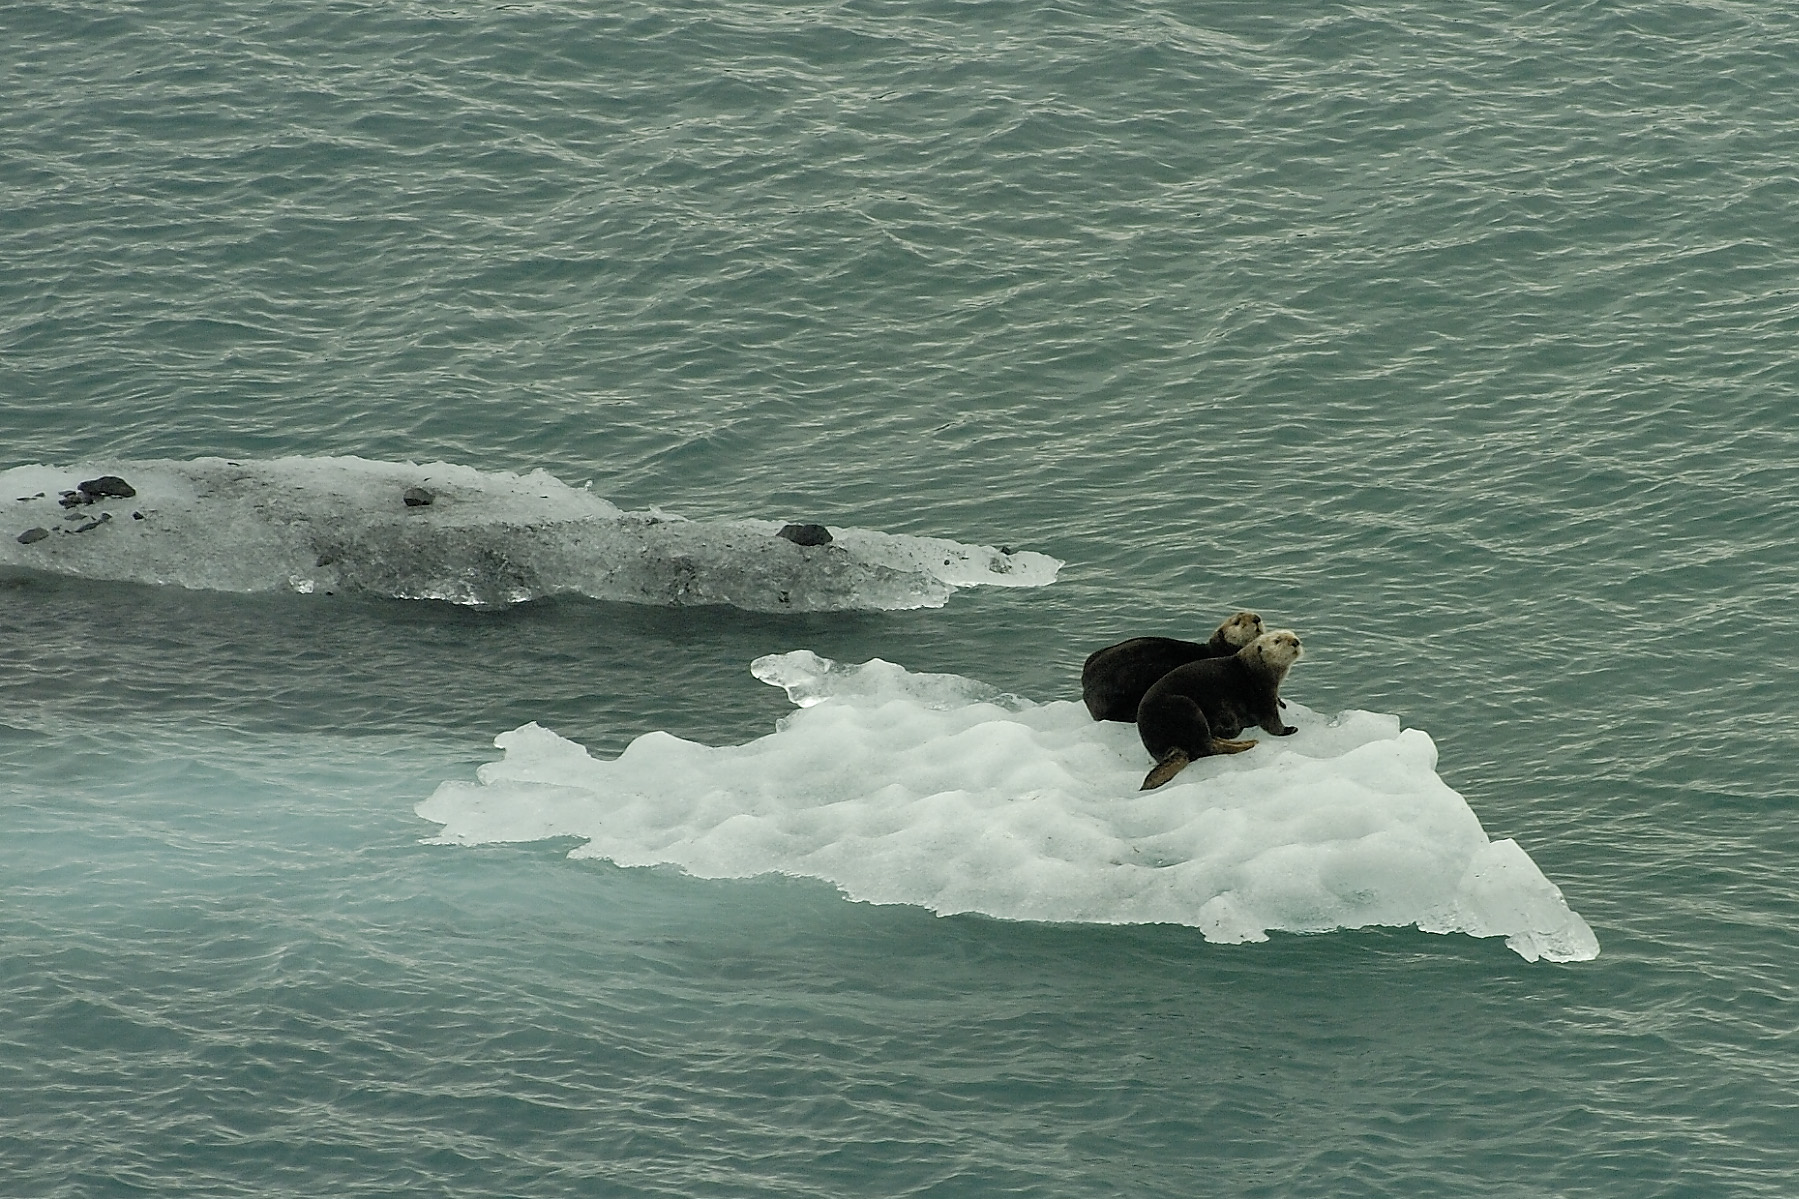 One of my favorite wildlife sightings of all time- adorable sea otters riding on an iceberg!